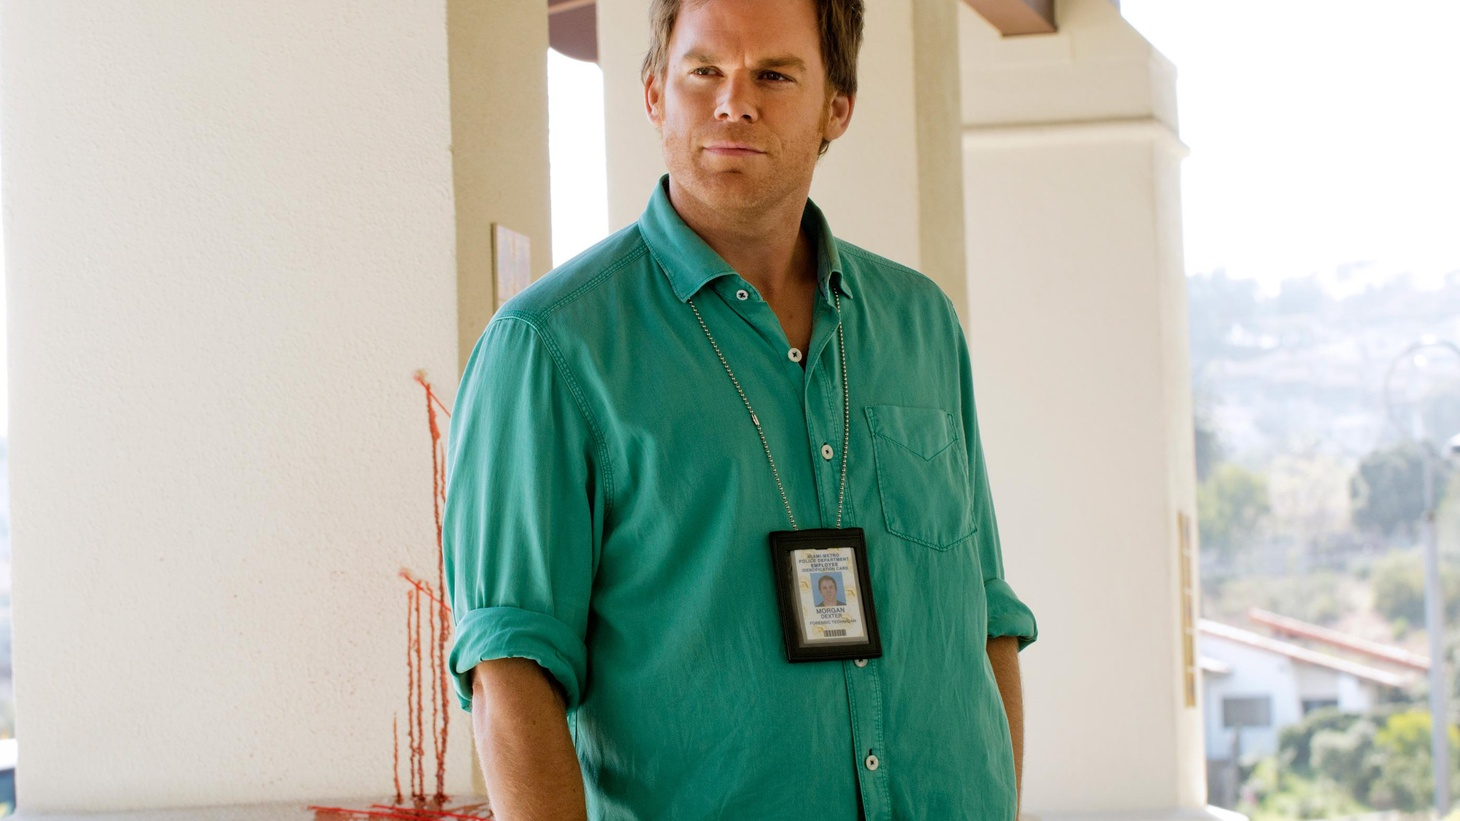 """With the series finale of """"Dexter"""" looming, award-winning actor Michael C. Hall reflects on the particular challenge of getting an audience to warm up to a lonely serial killer."""